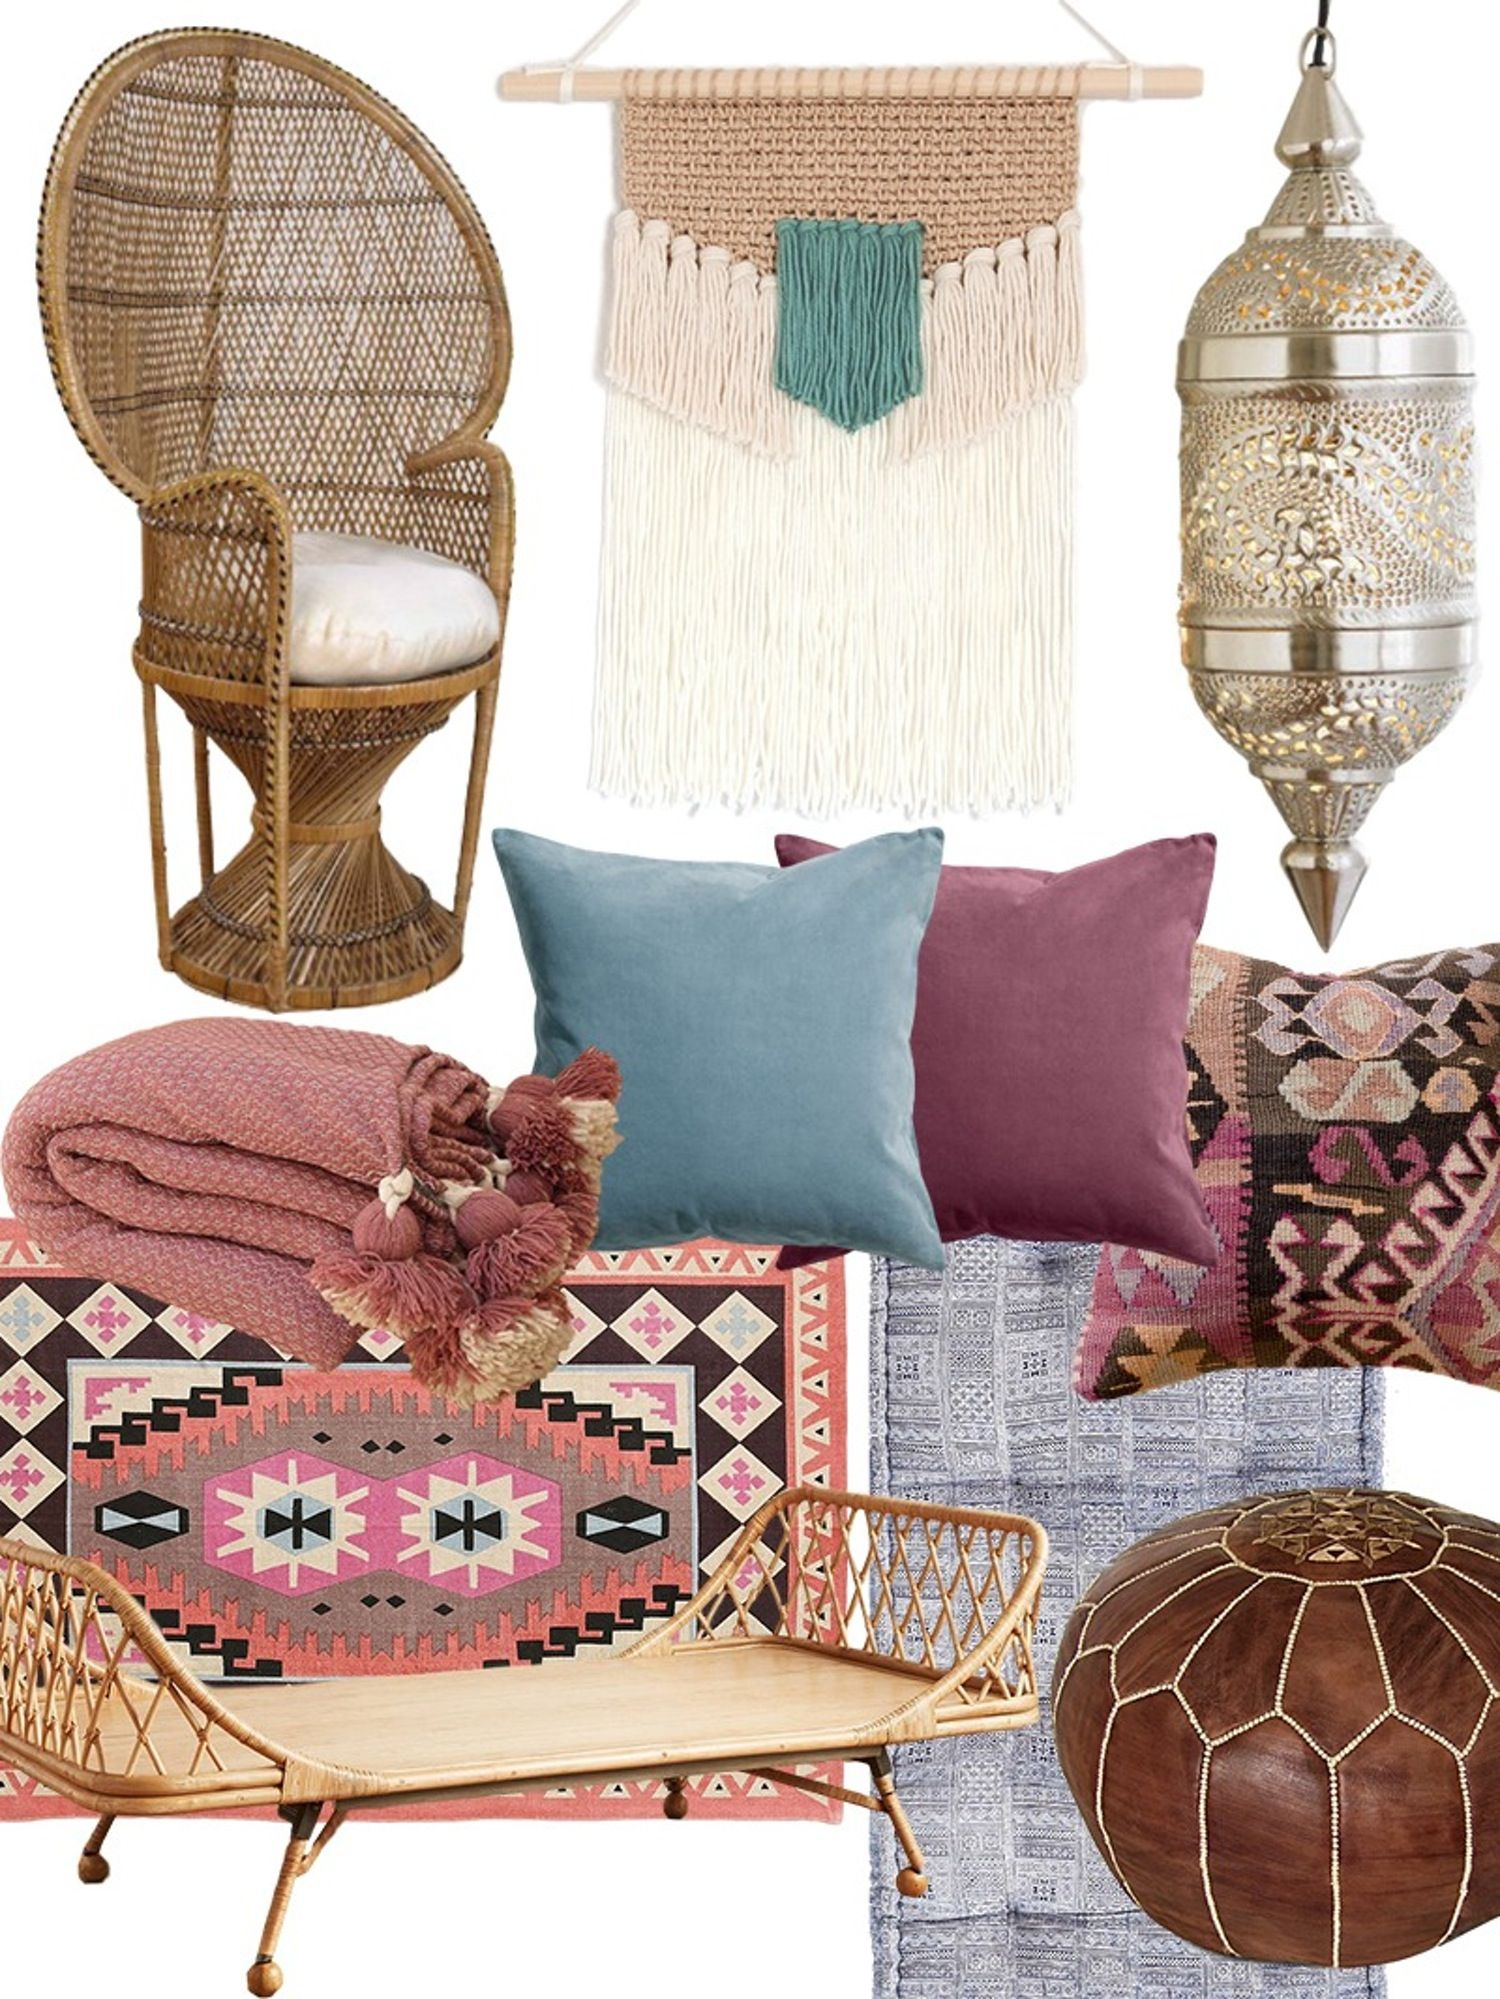 Boho Library Wall Living Room: Create The Look: Artful Bohemian Living Room Shopping